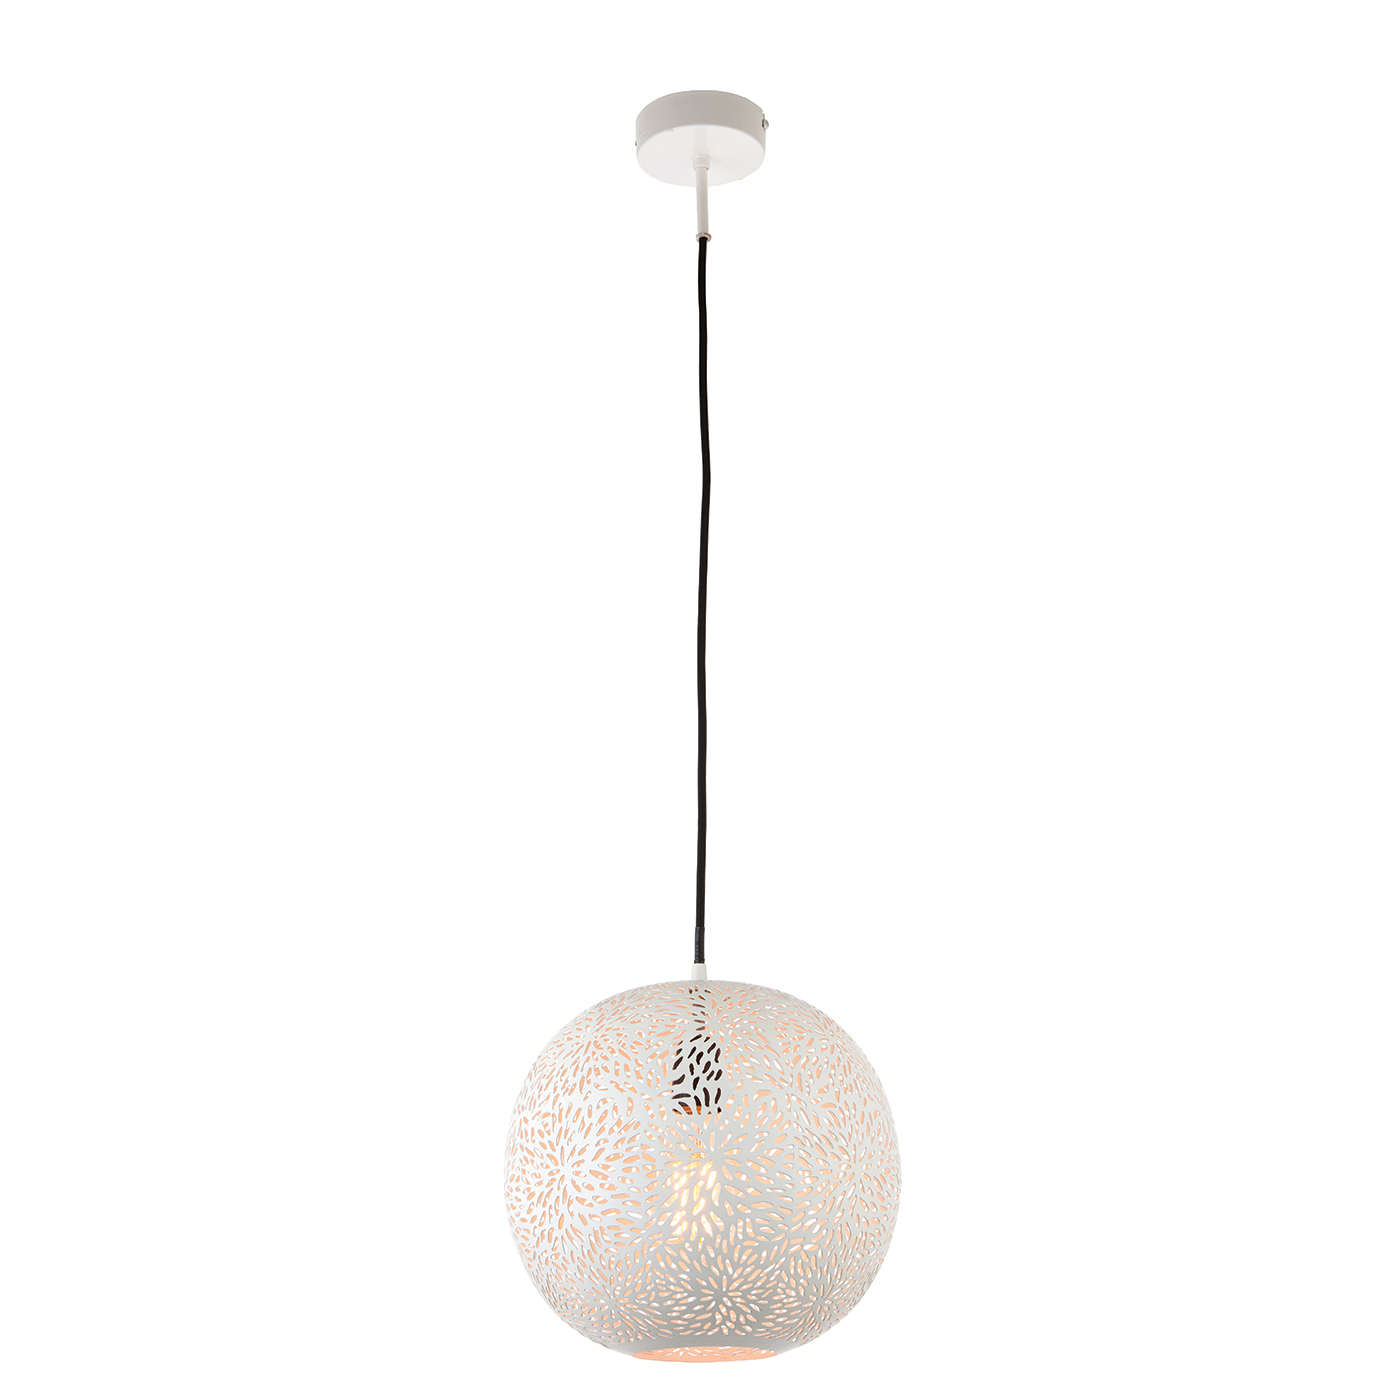 Endon Javarone pendant 1x 40W Matt white paint